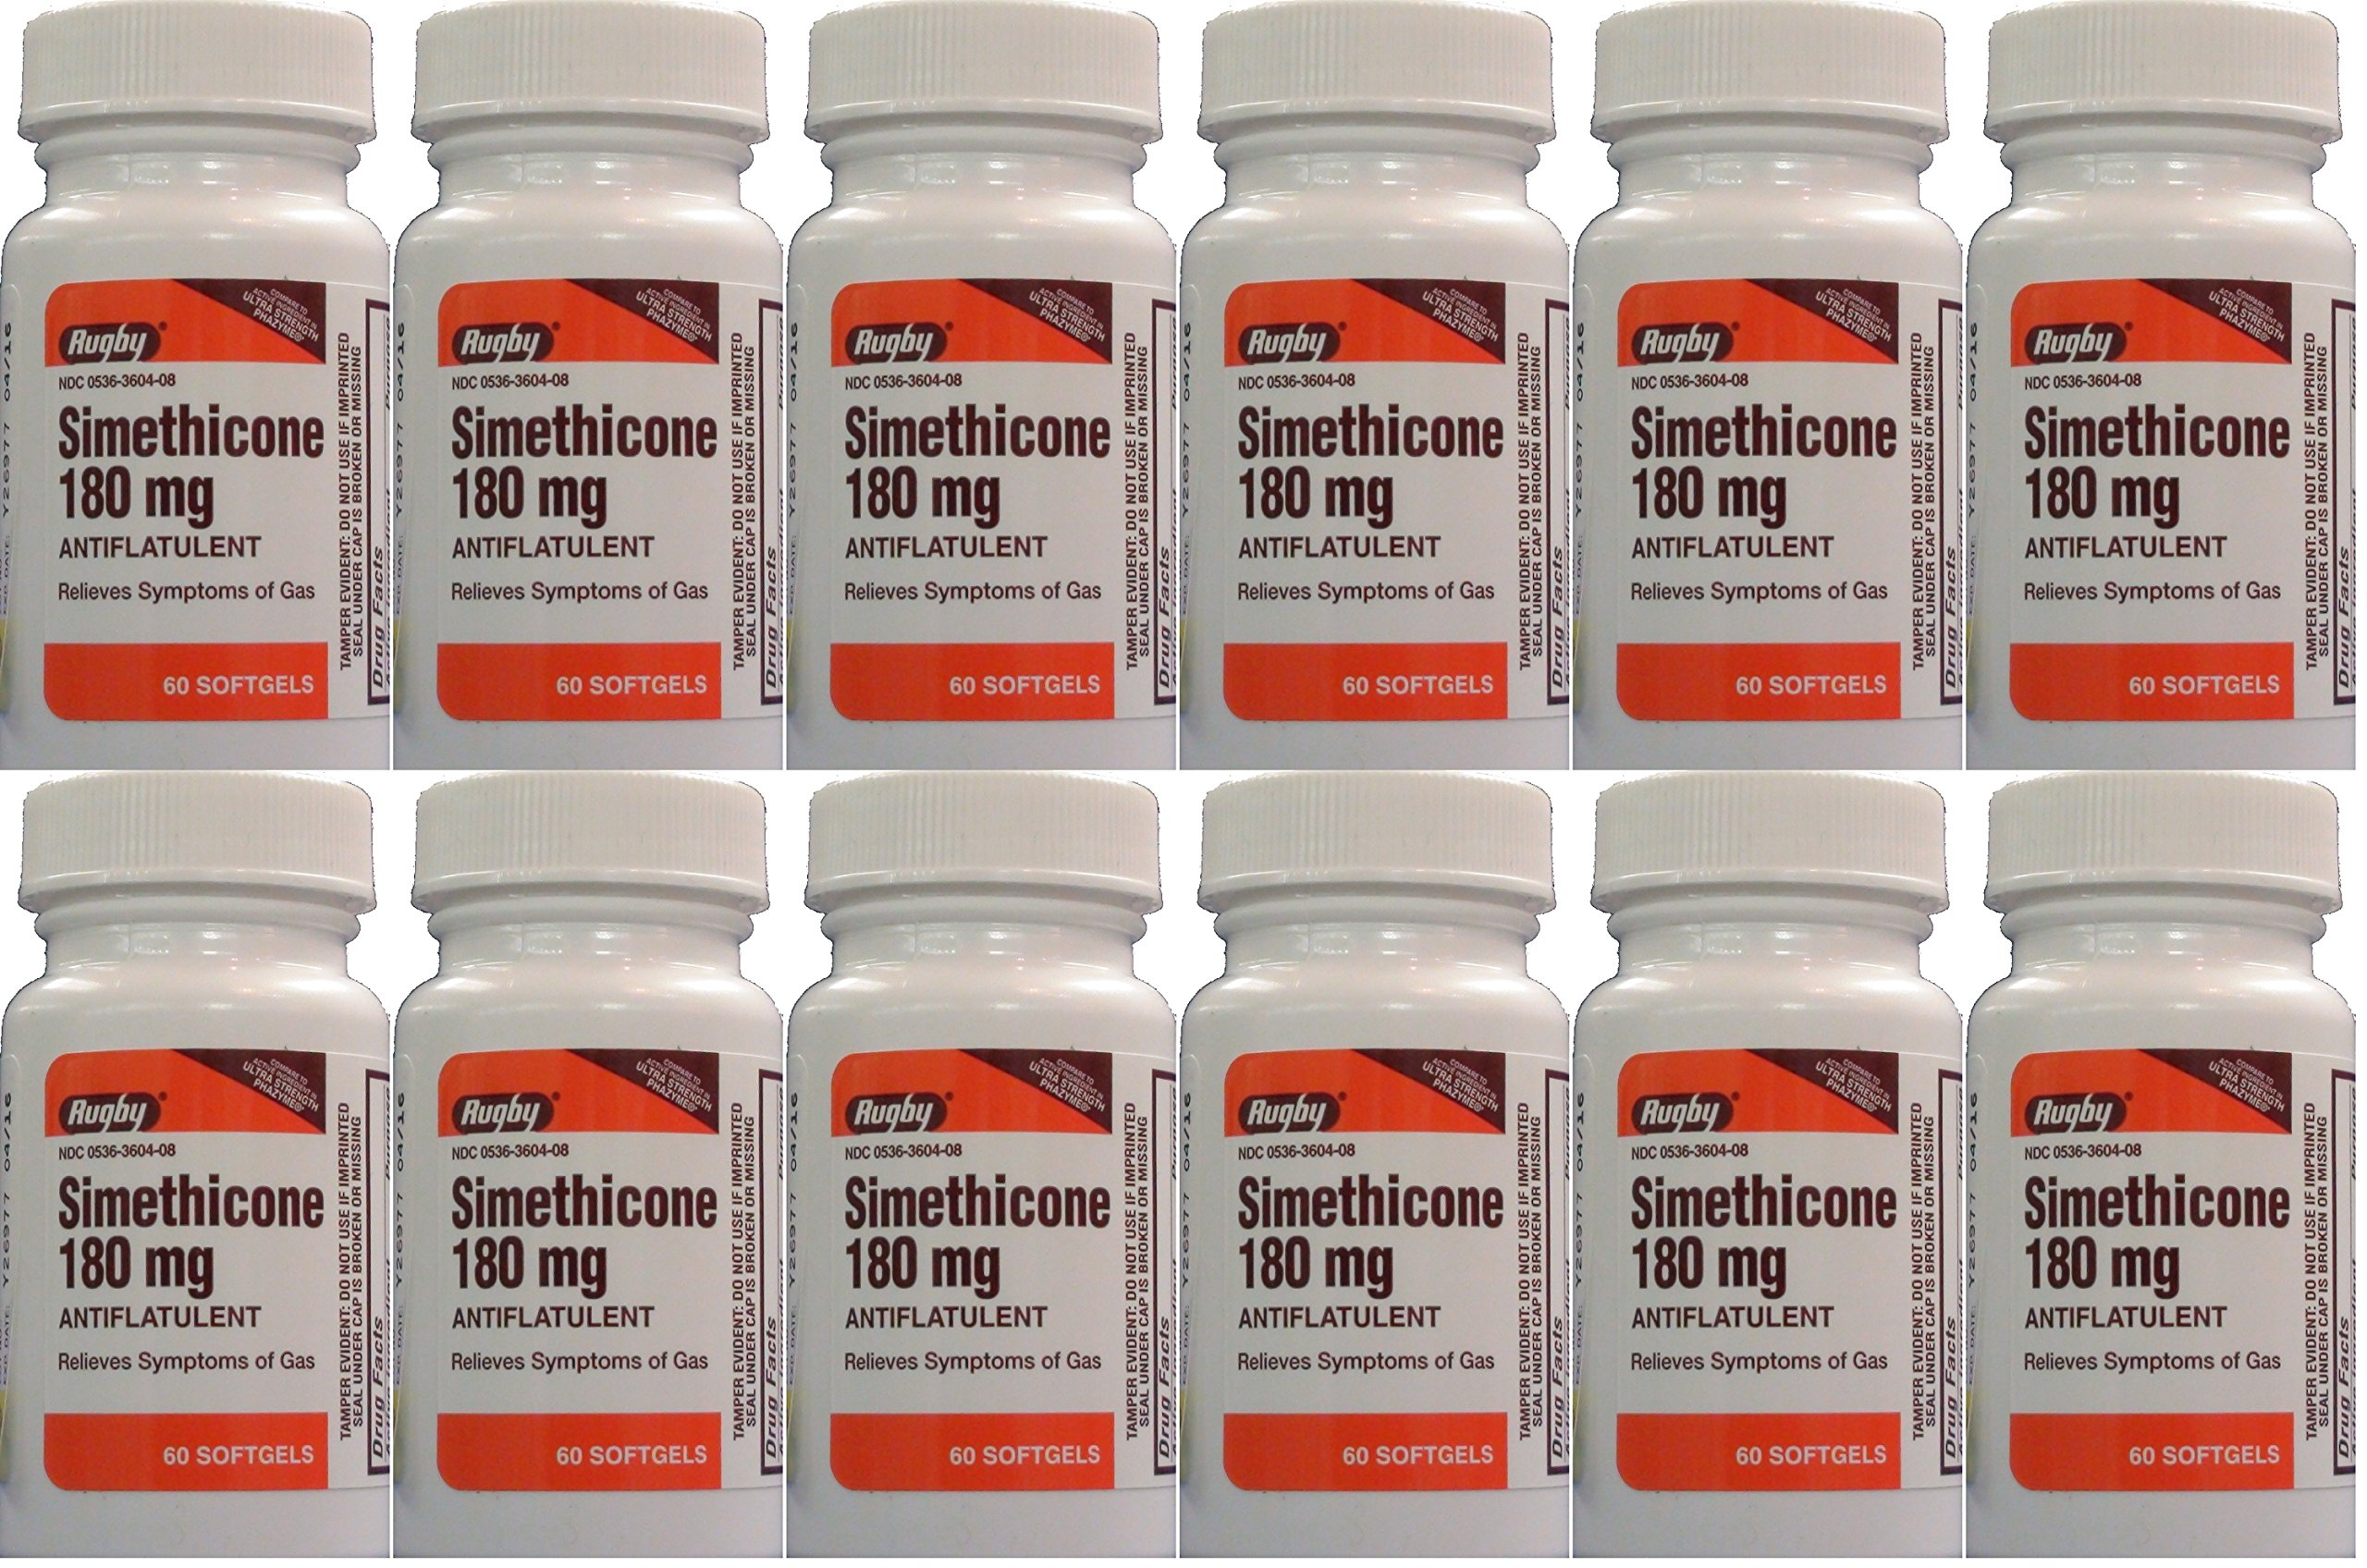 Simethicone 180mg Softgels Anti-Gas Generic for Phazyme Ultra Strength 60 Gelcaps per Bottle Pack of 12 Total 720 Gelcaps by RUGBY LABORATORIES